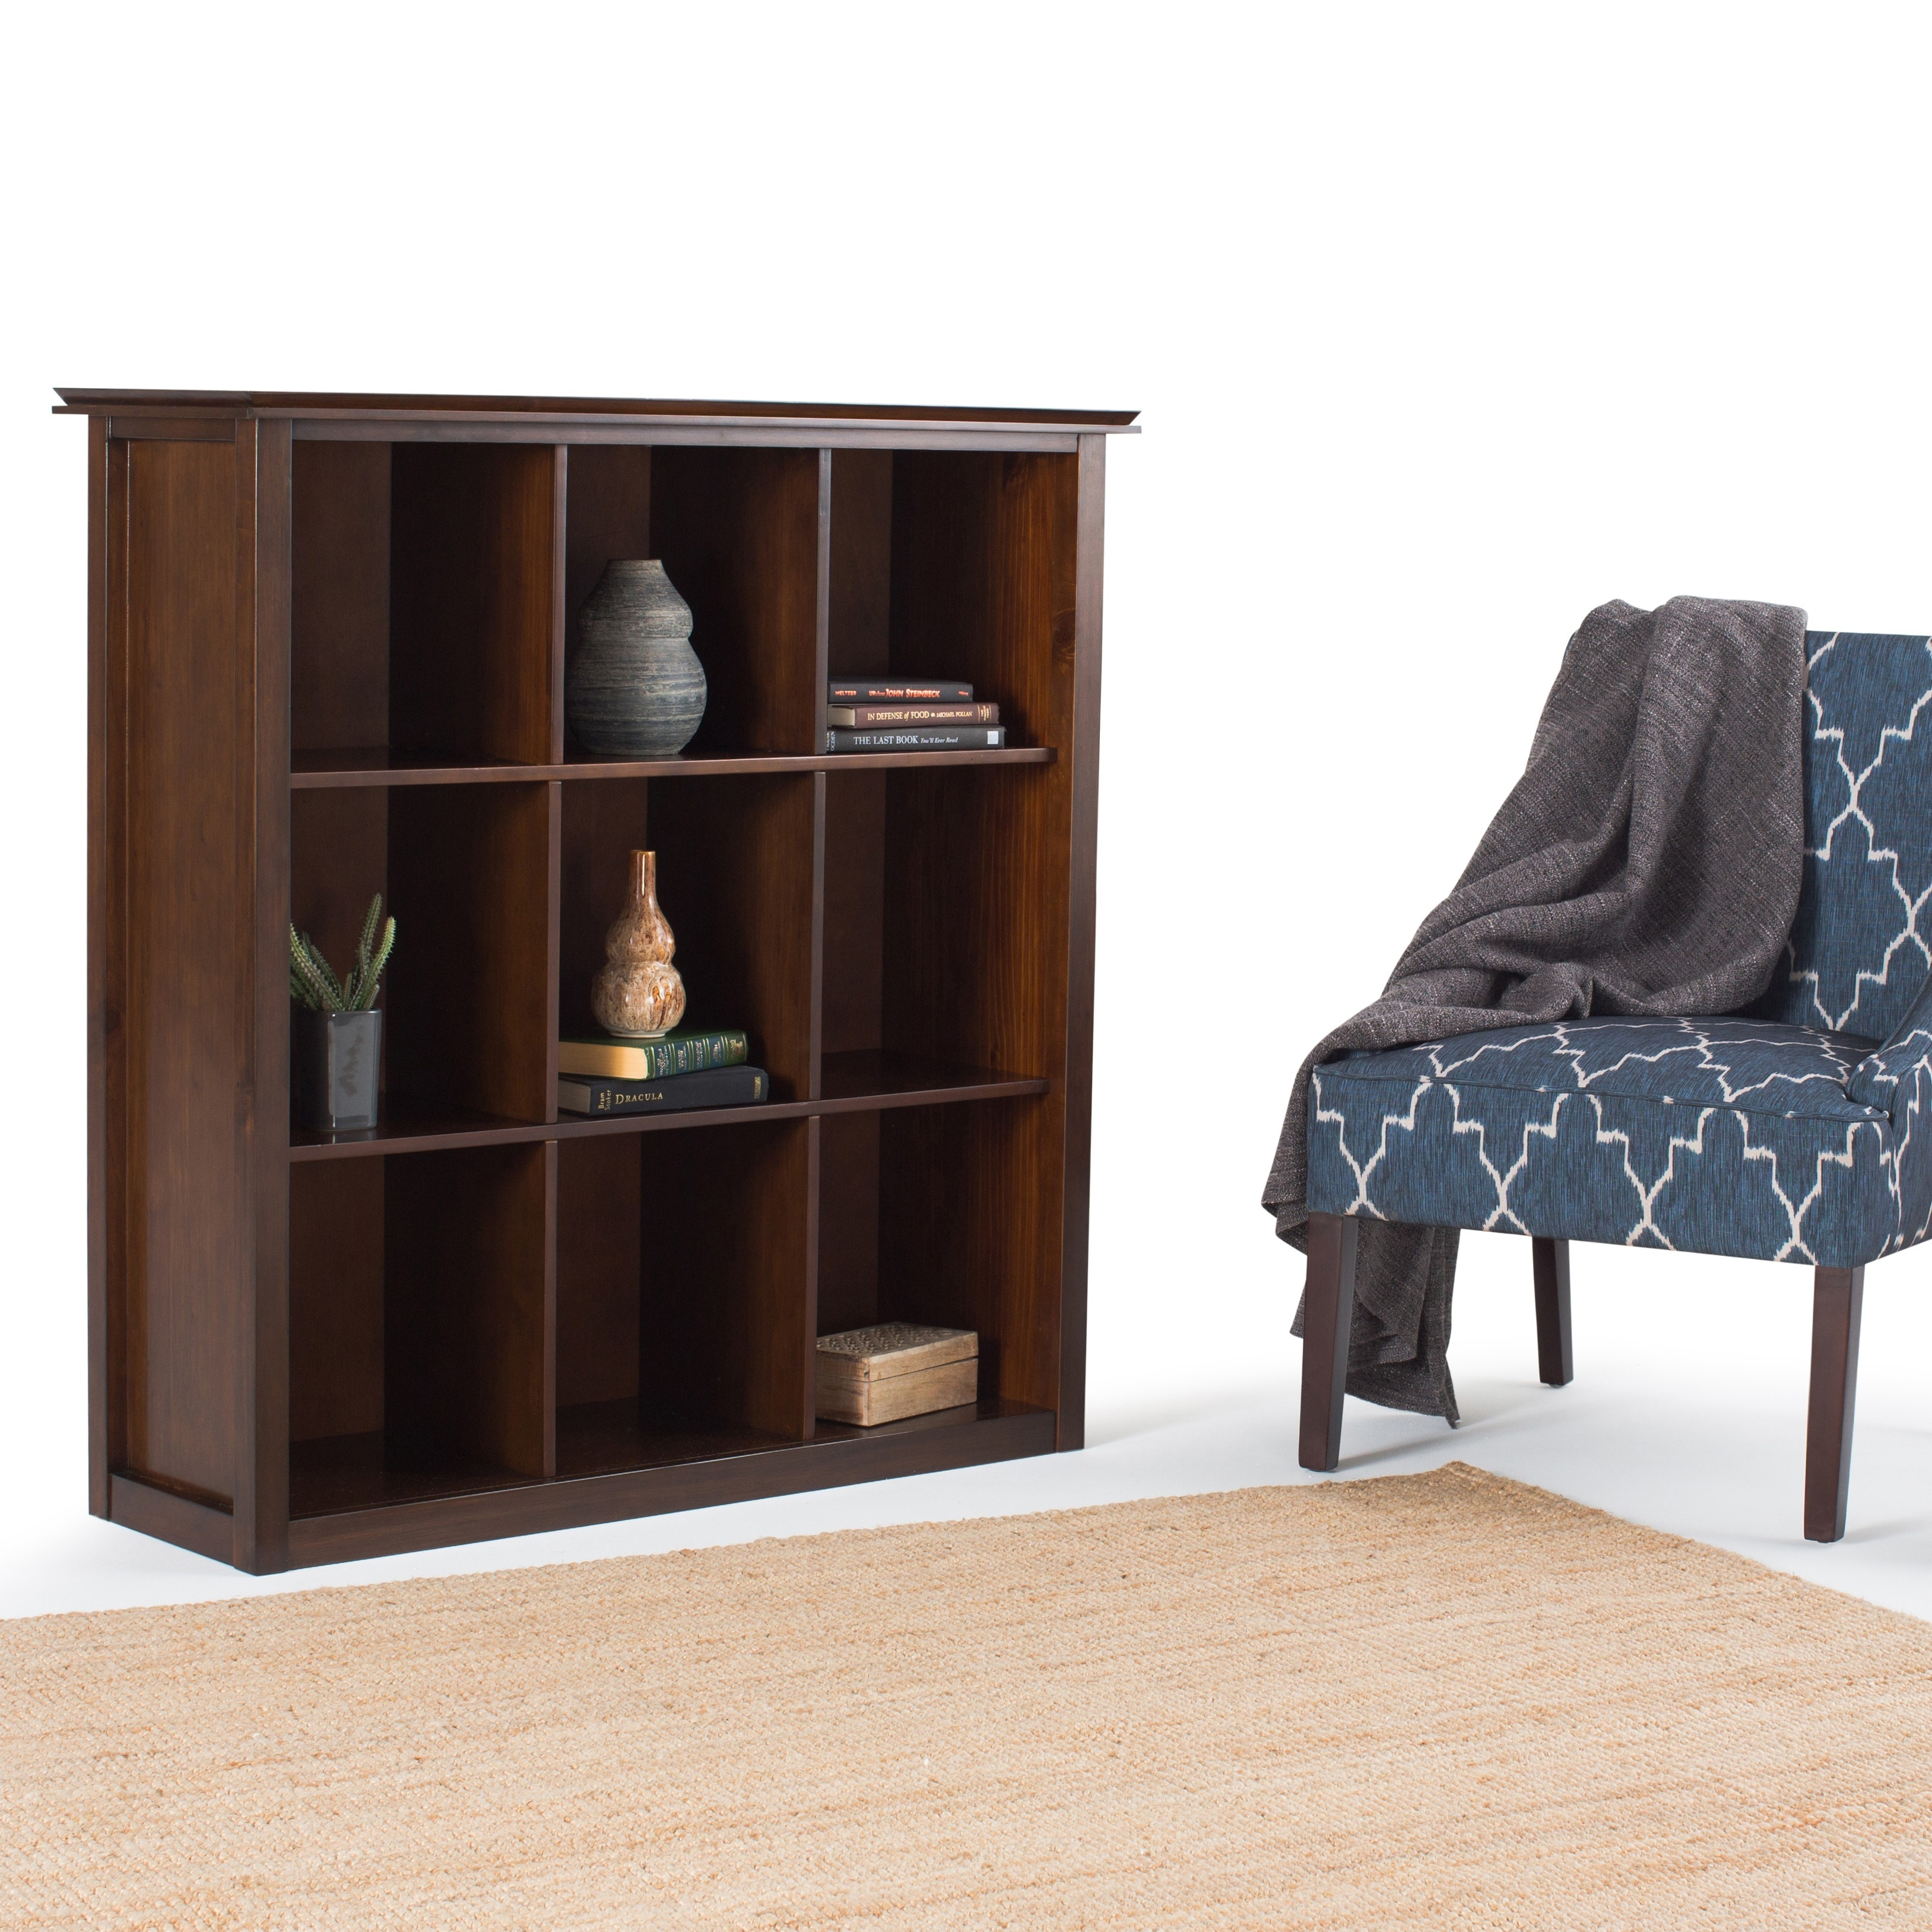 display bookcase ca di villa allen images ethan office en file shop triple bookcases home null front furniture storage